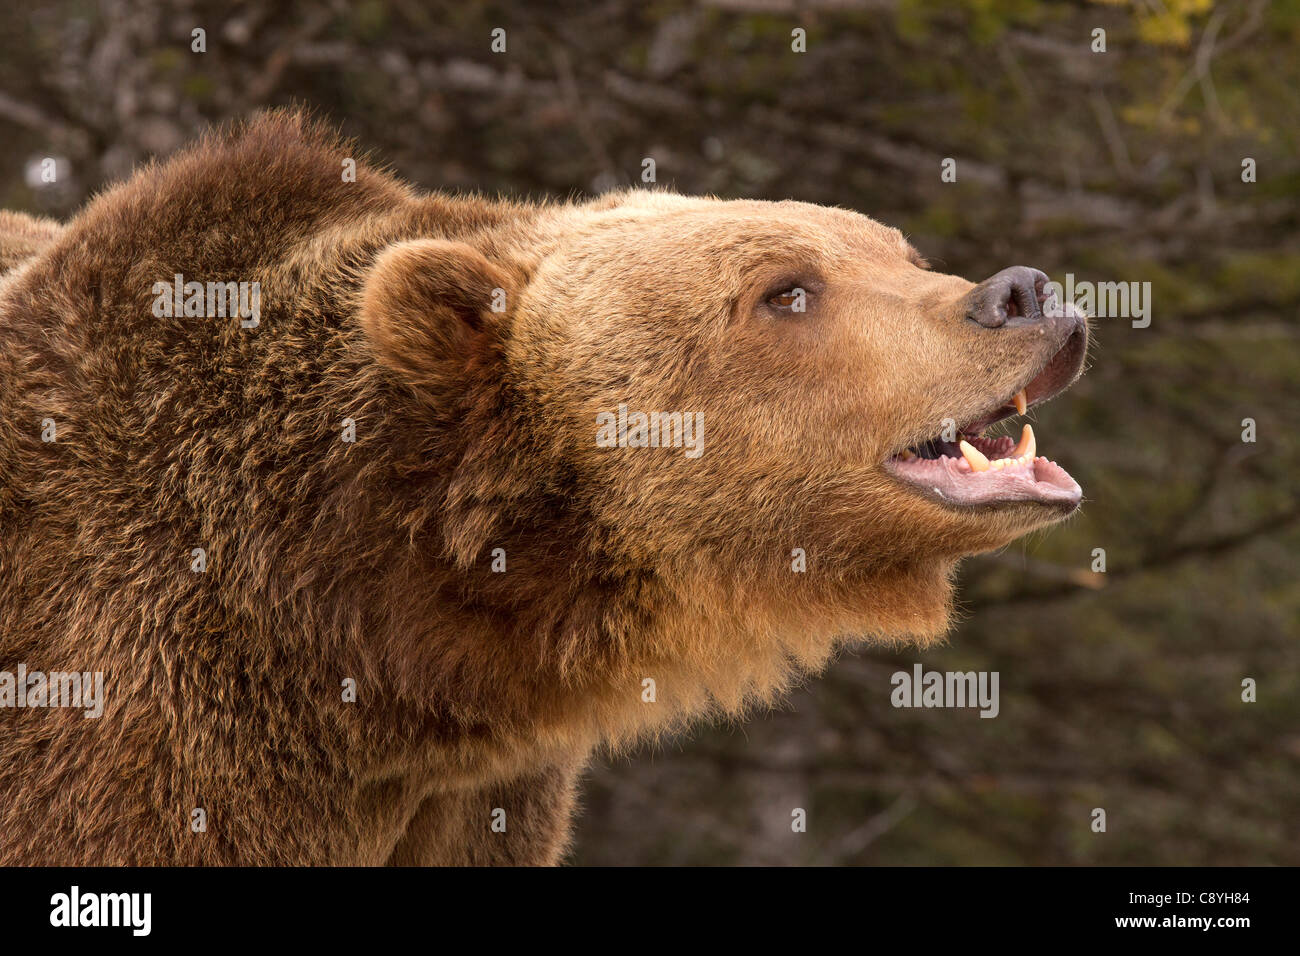 Grizzly Bear, Ursus arctos horribilis smiles for the camera - Stock Image